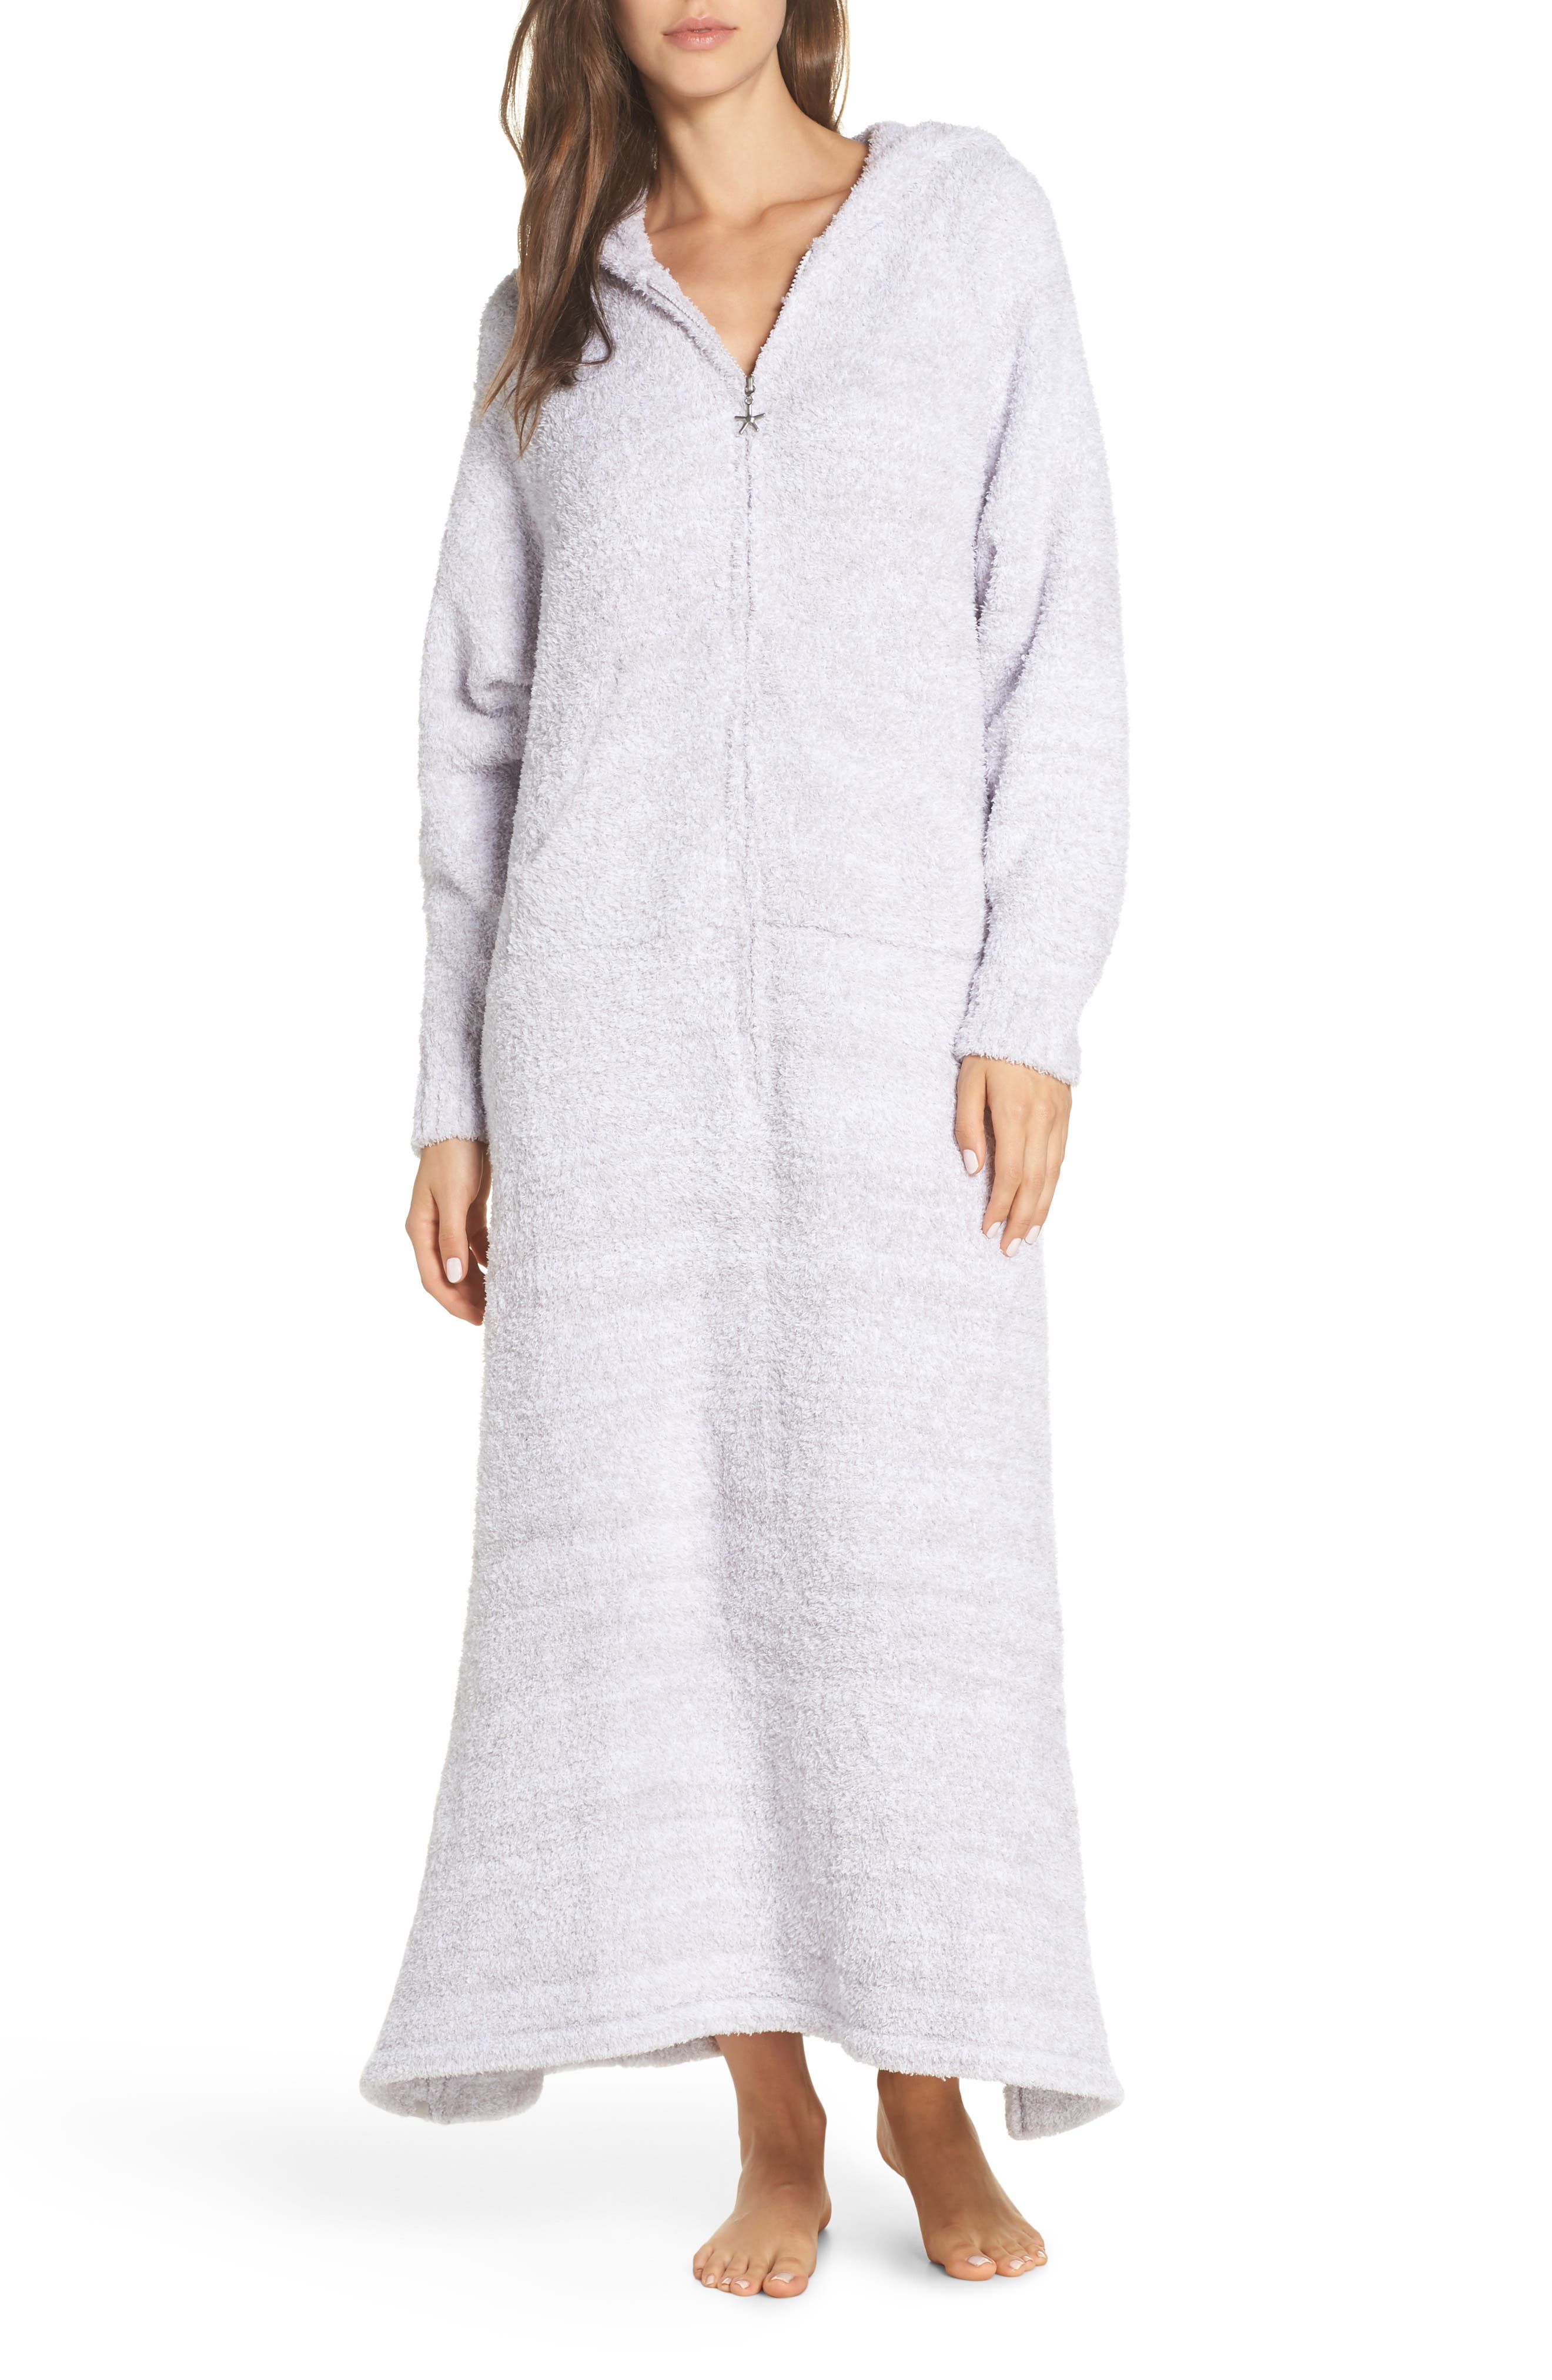 BAREFOOT DREAMS<SUP>®</SUP> CozyChic<sup>®</sup> Hooded Zip Robe, Main, color, OYSTER/ WHITE